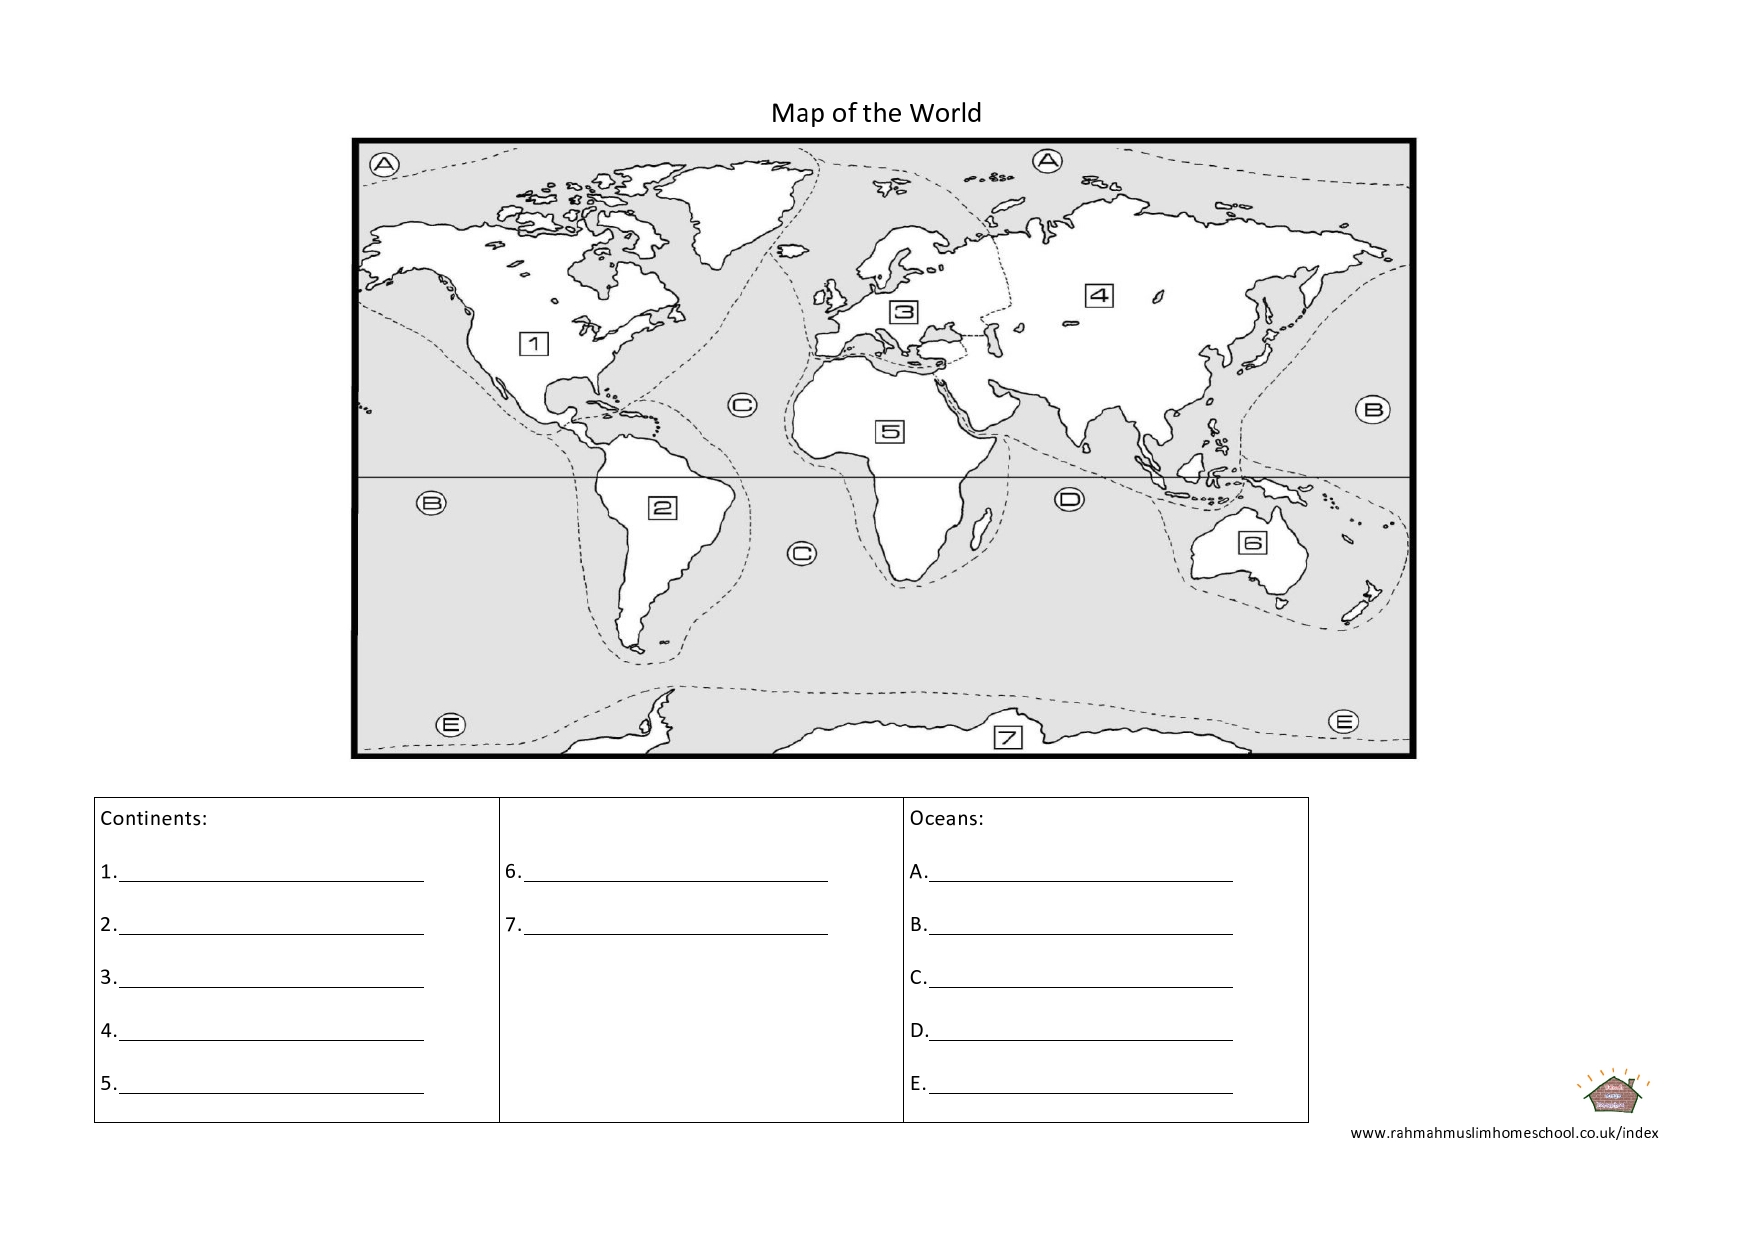 7 Continents And 4 Oceans Worksheet